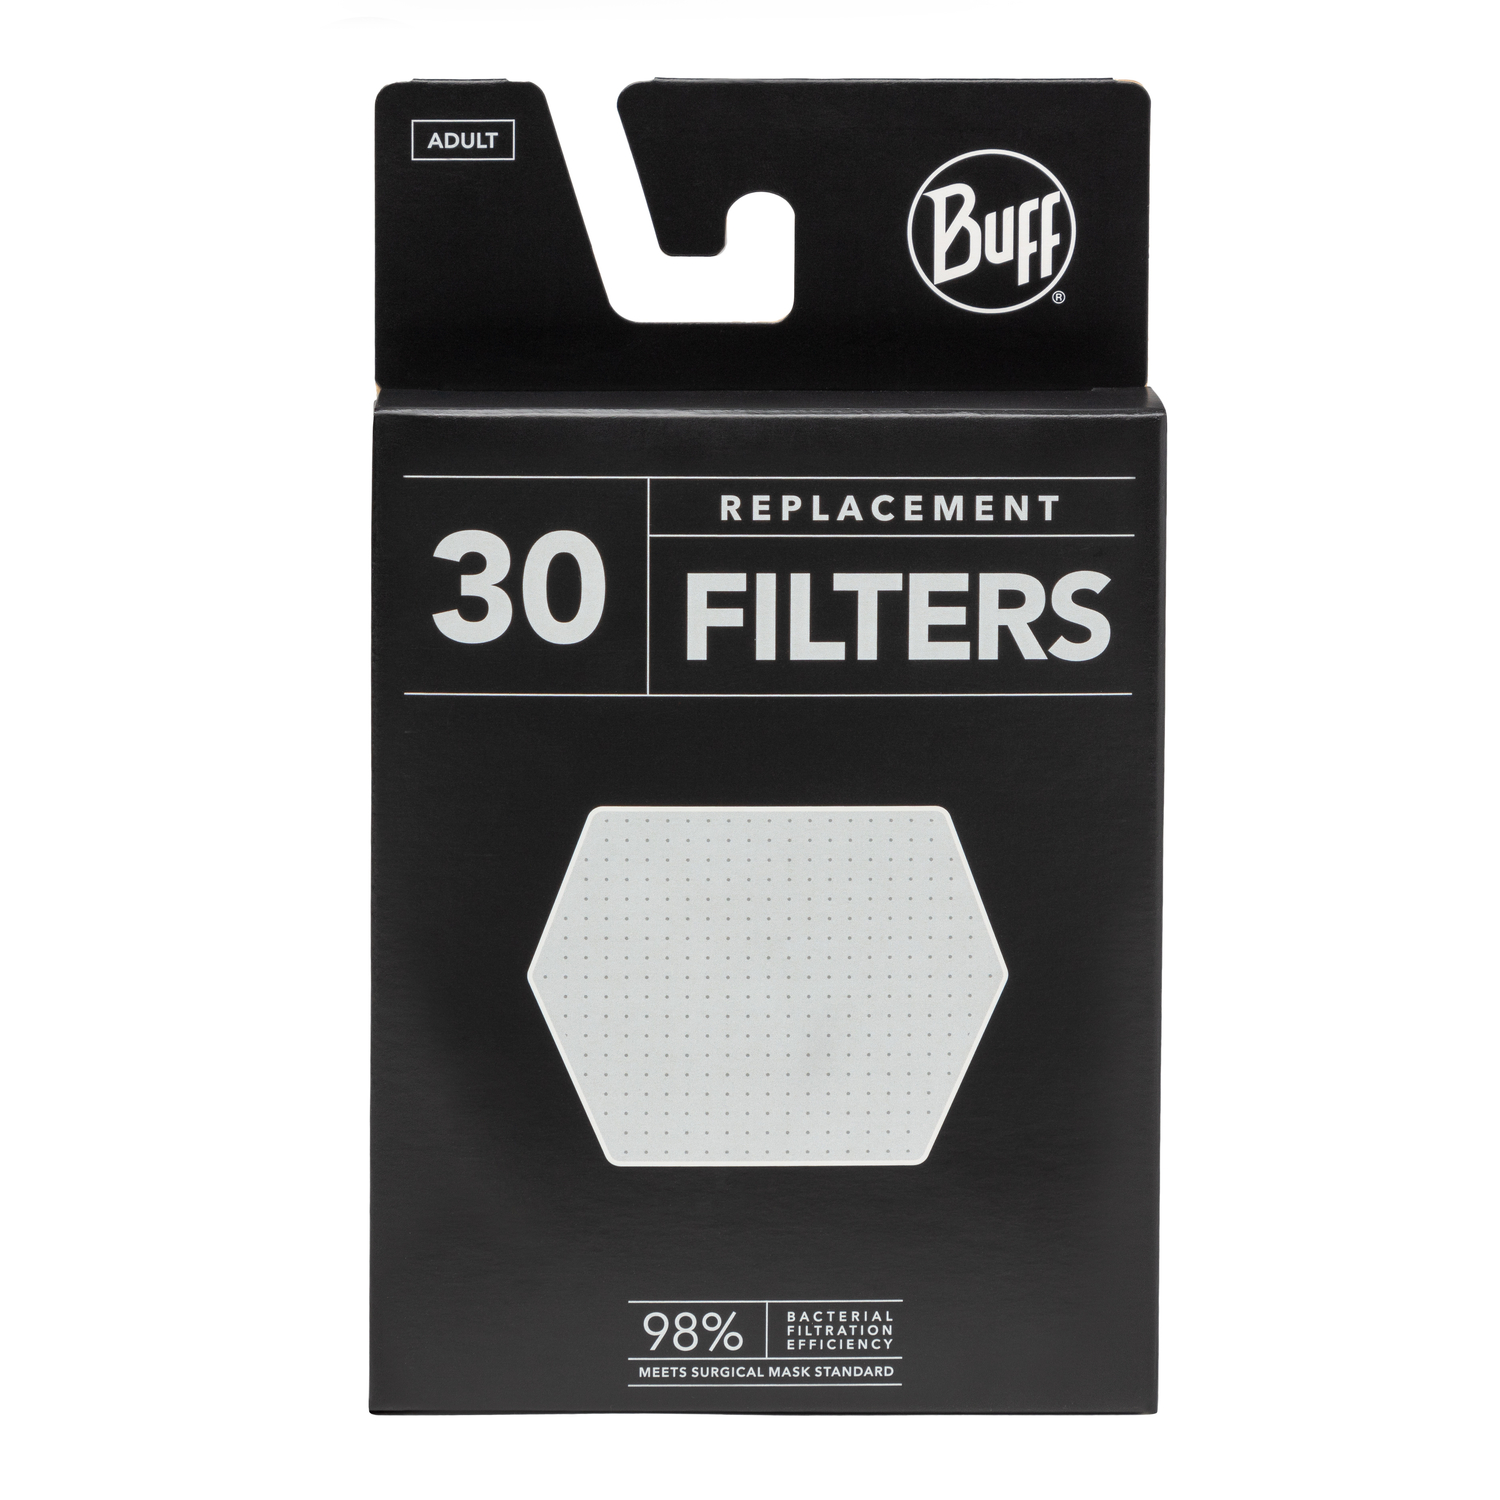 Buff Filter Refill Kinderen